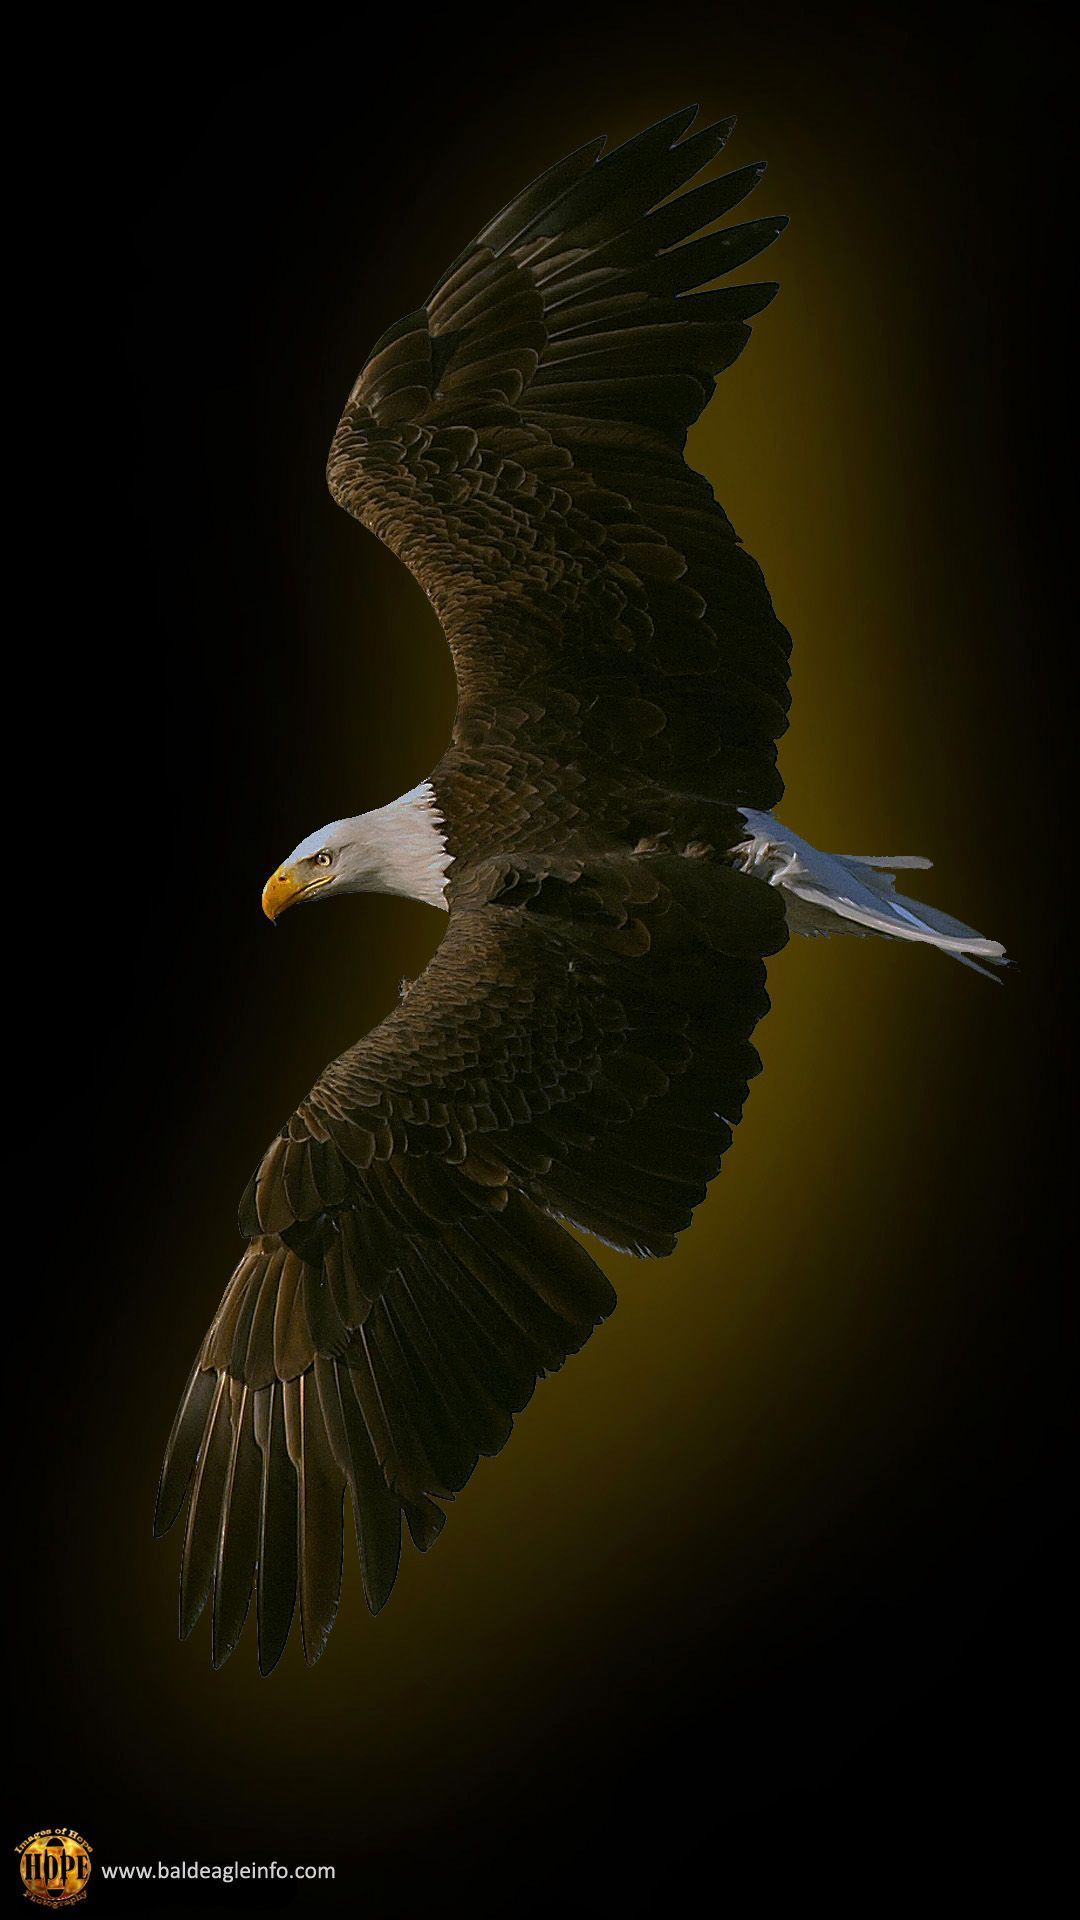 Eagle Wallpaper 4k Iphone Mywallpapers Site In 2020 Eagle Wallpaper Animal Wallpaper Bald Eagle